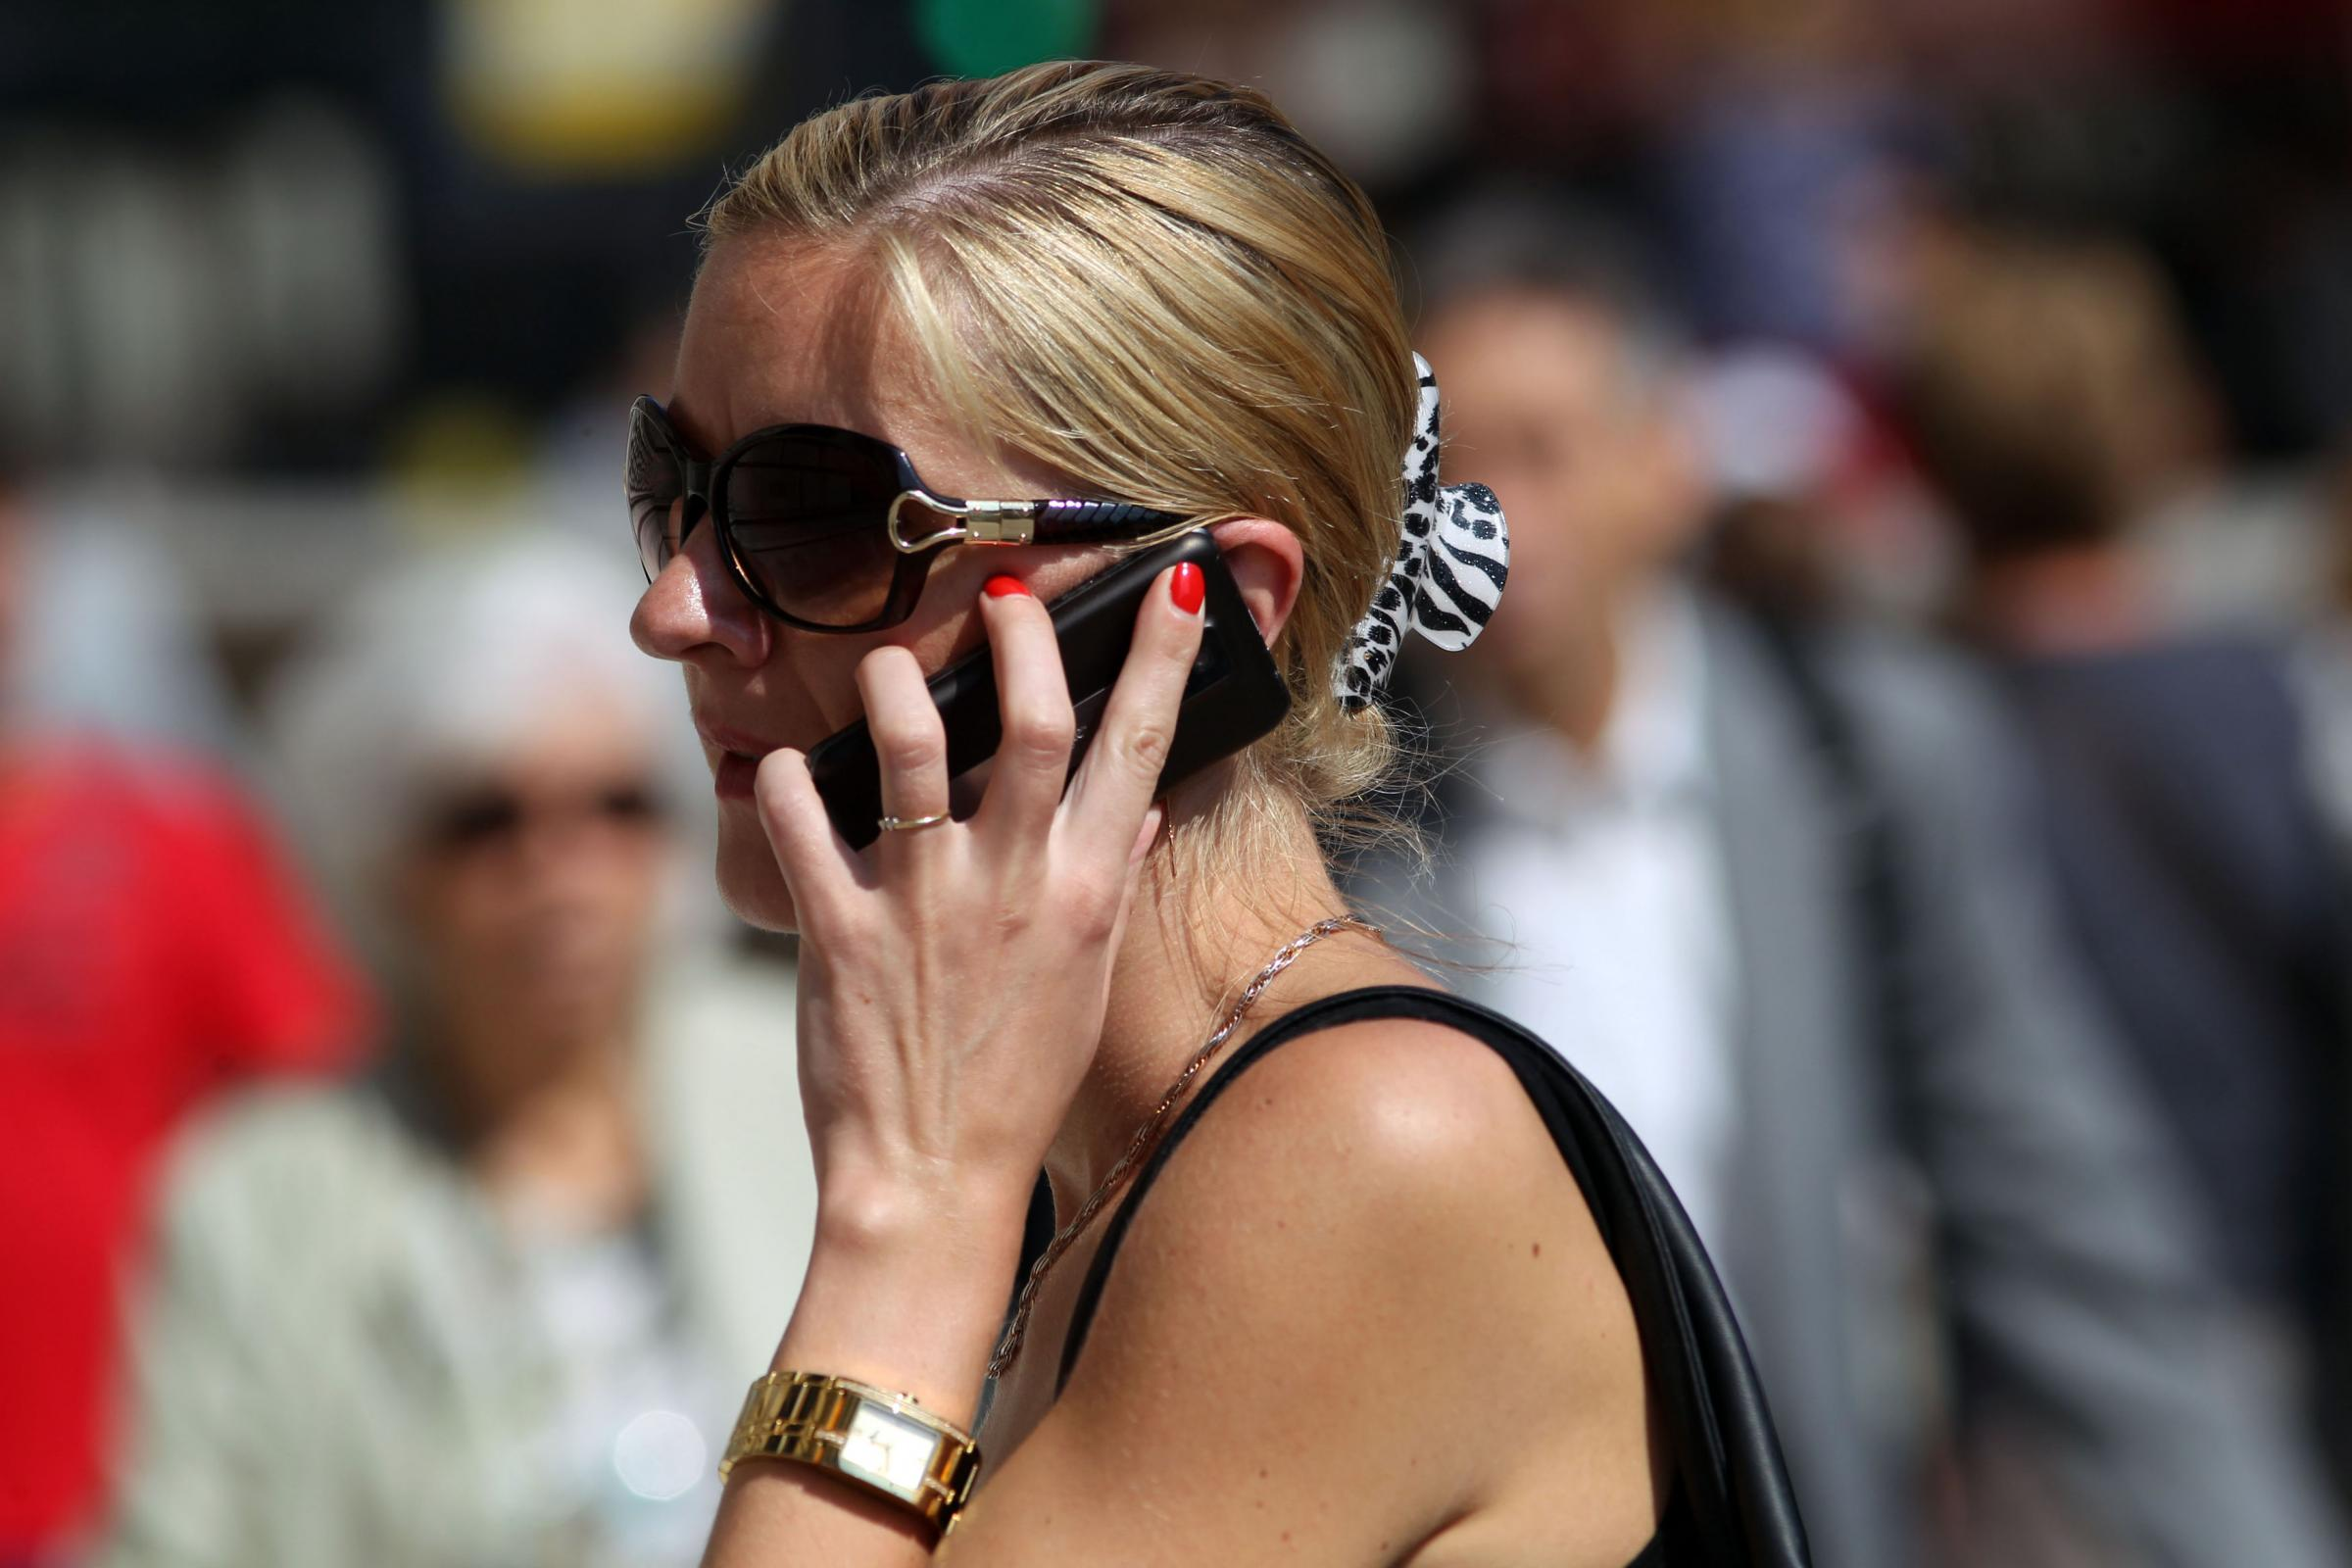 EU Eradicates Mobile Roaming Charges